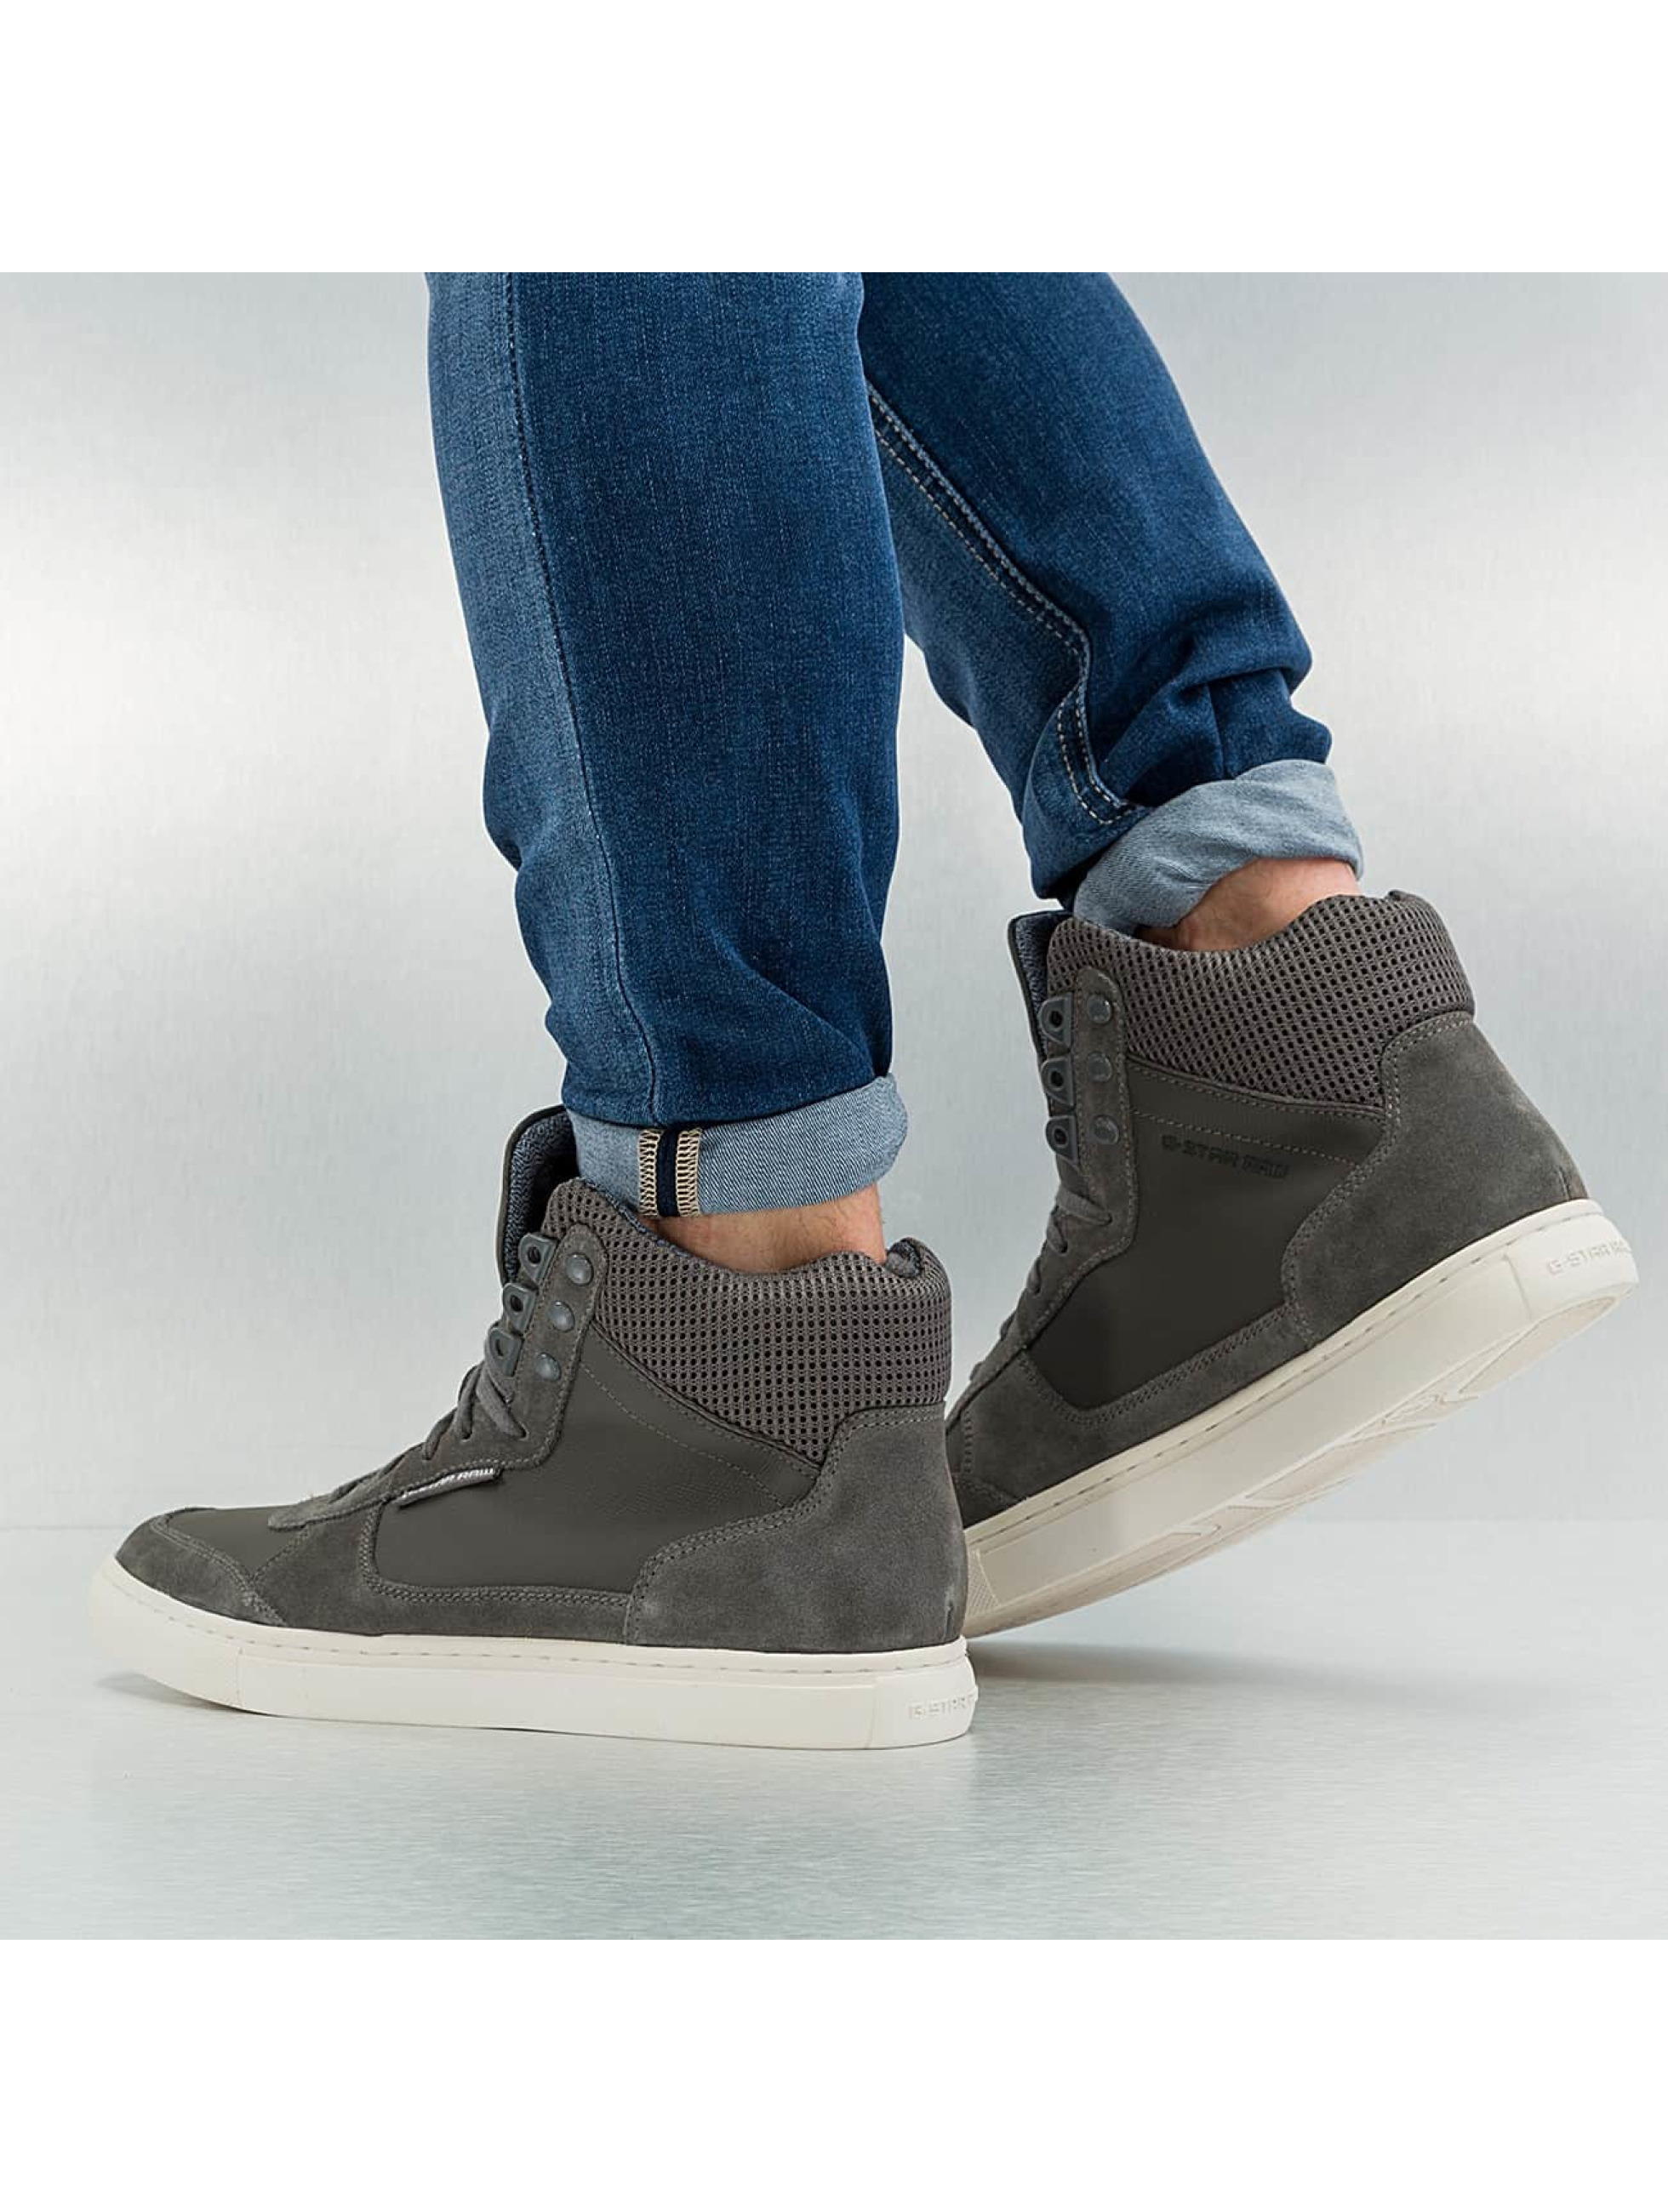 G-Star Sneaker New Yield 2 grau